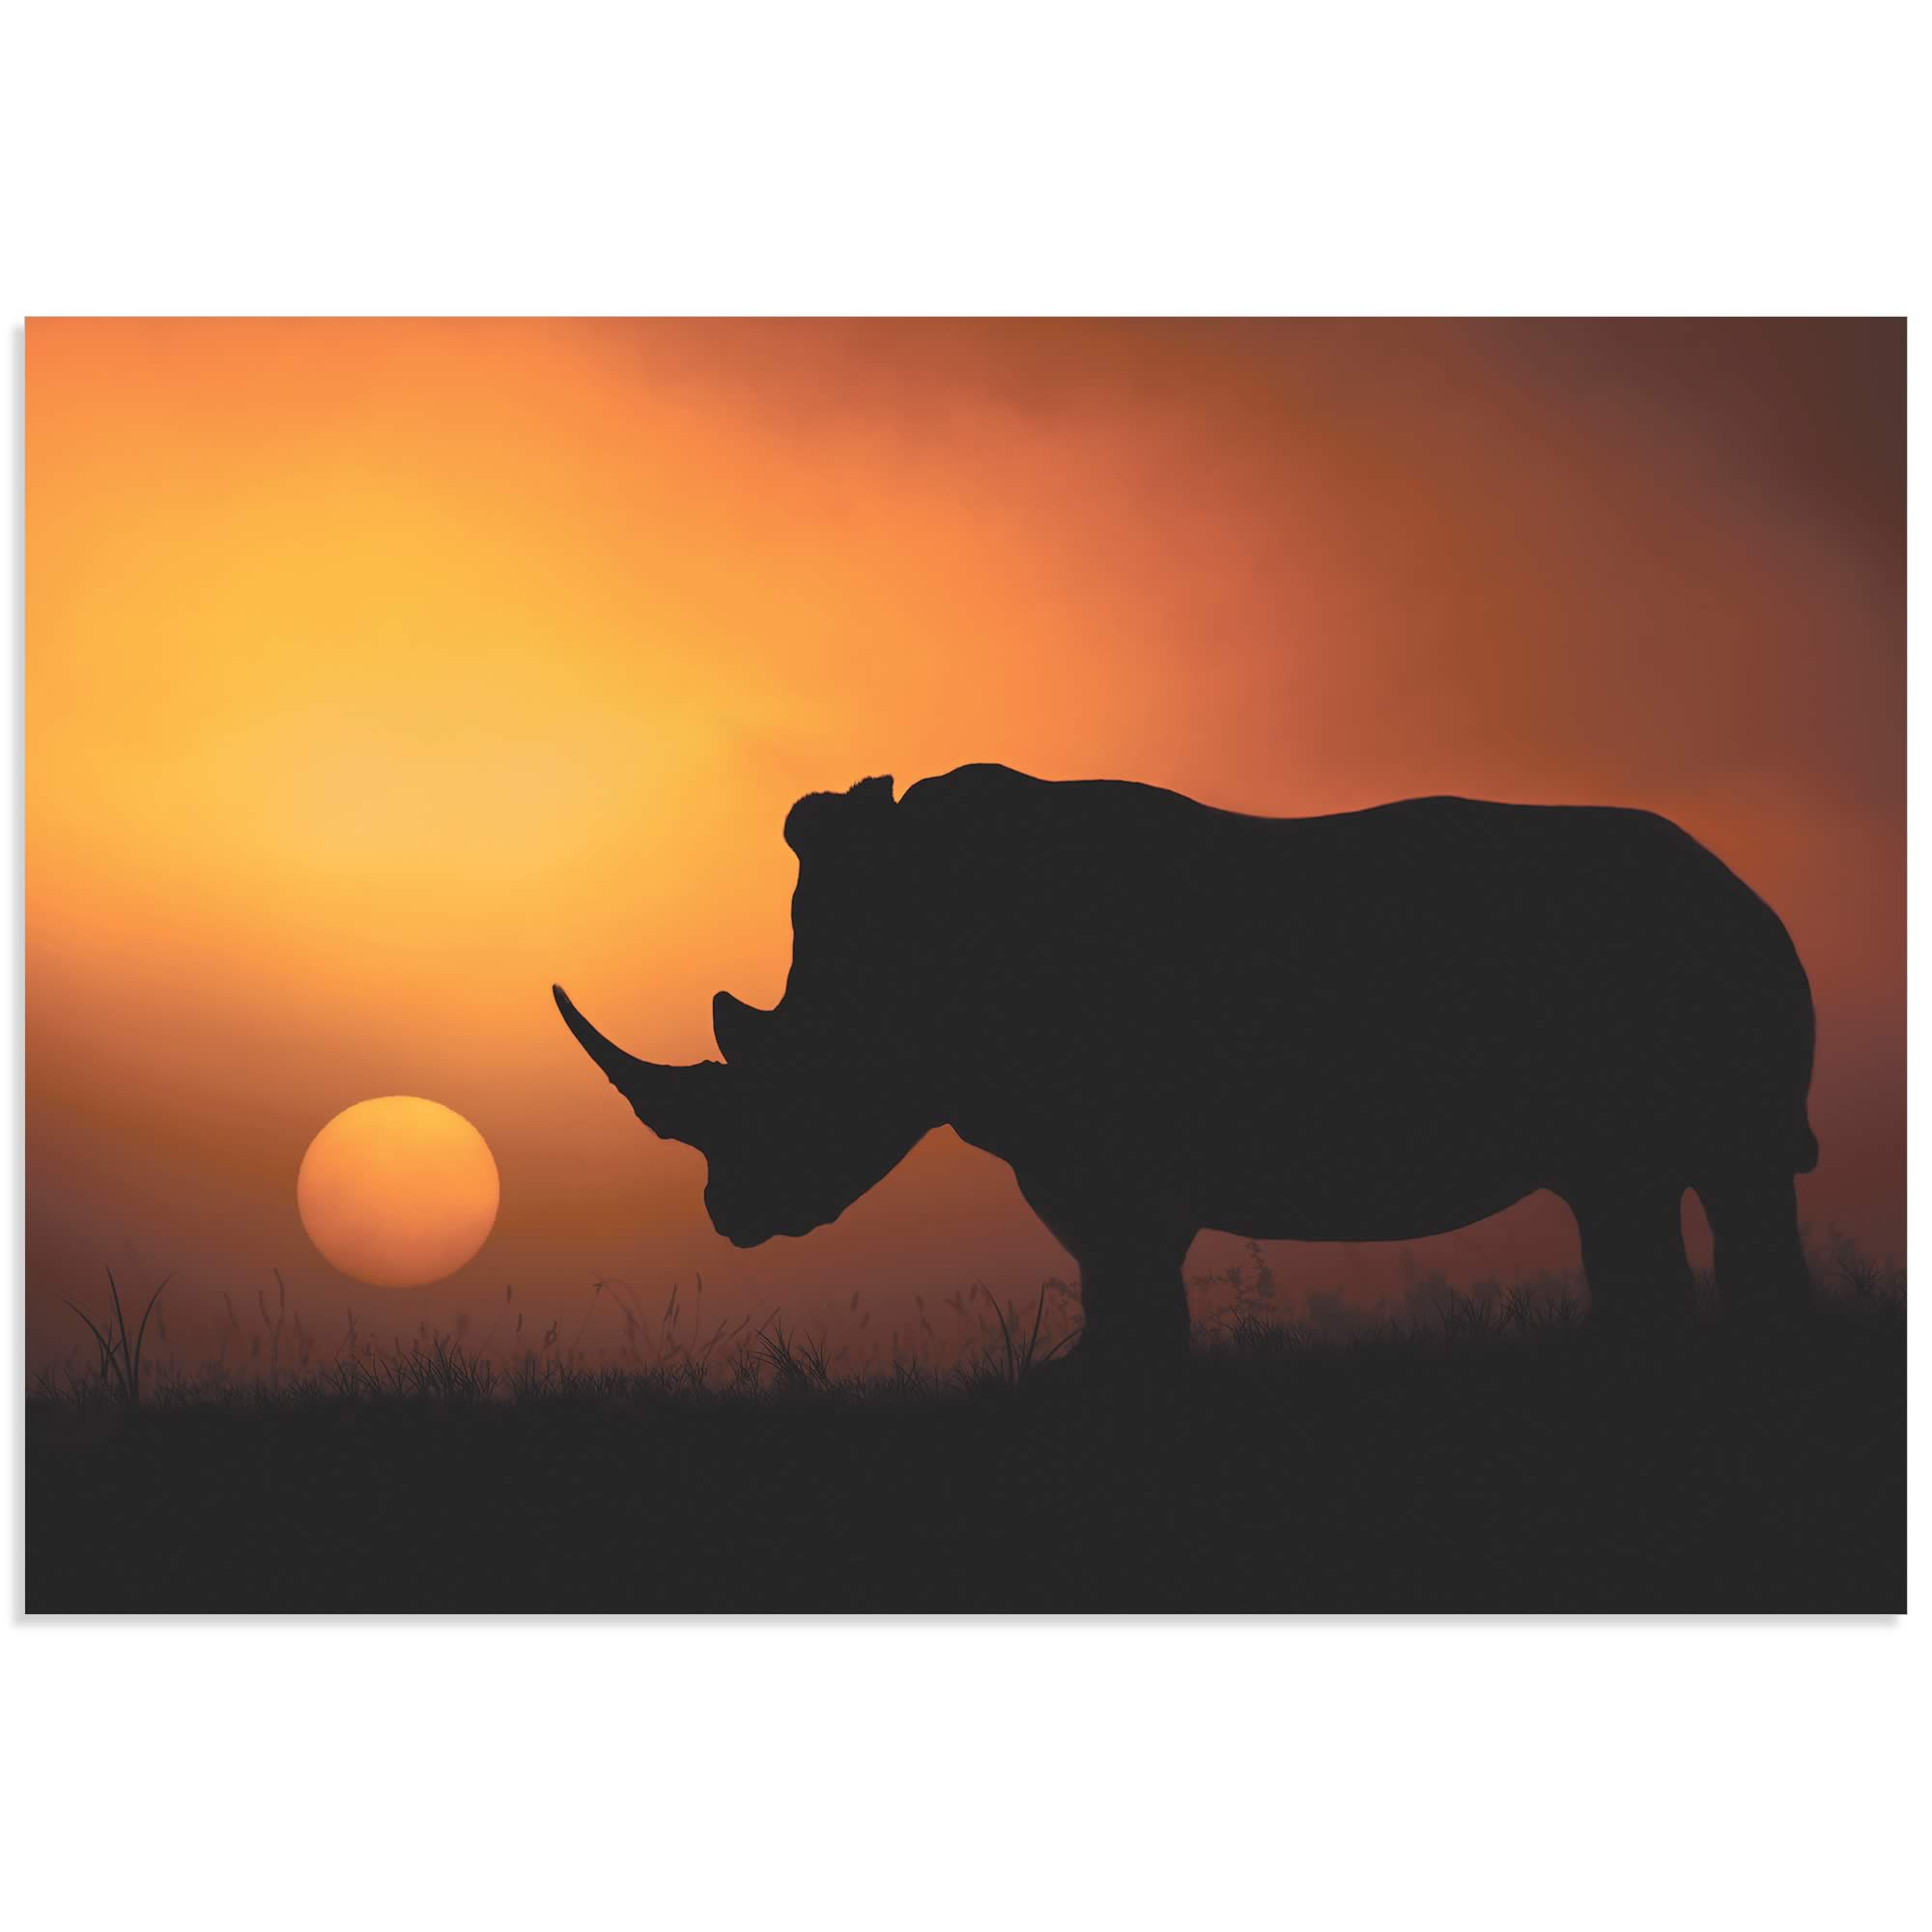 Rhino Sunrise by Mario Moreno - Rhino Silhouette Art on Metal or Acrylic